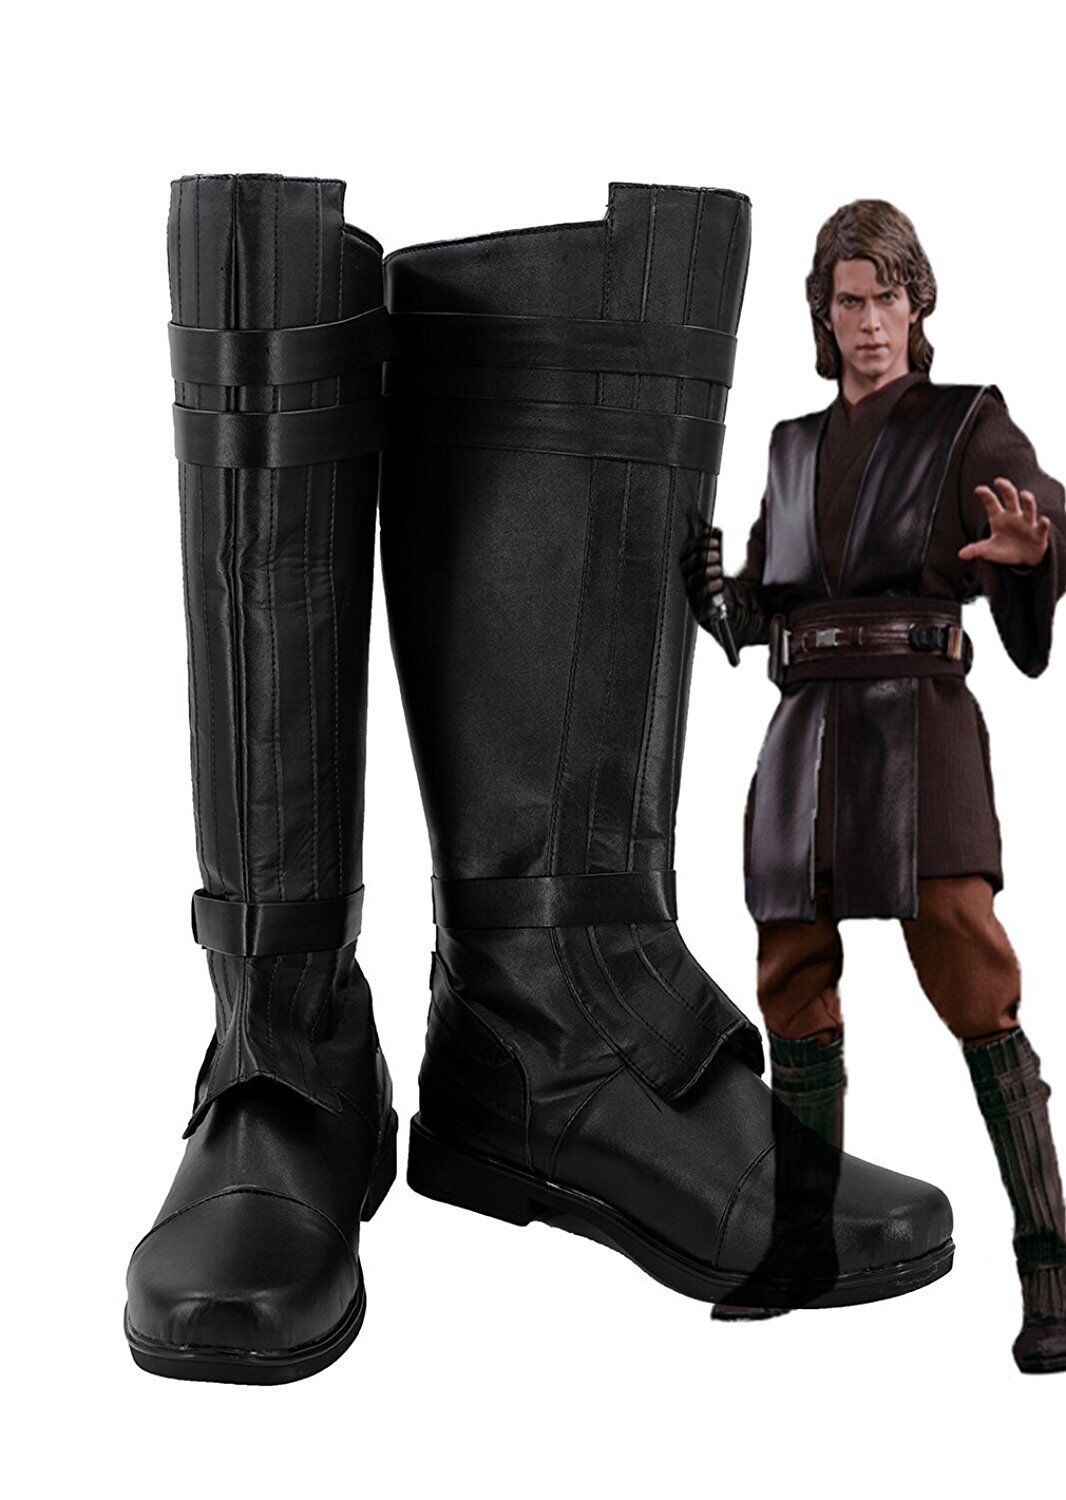 GSFDHDJS Cosplay Bottes Chaussures for Star Wars The Force Awakens Count Dooku